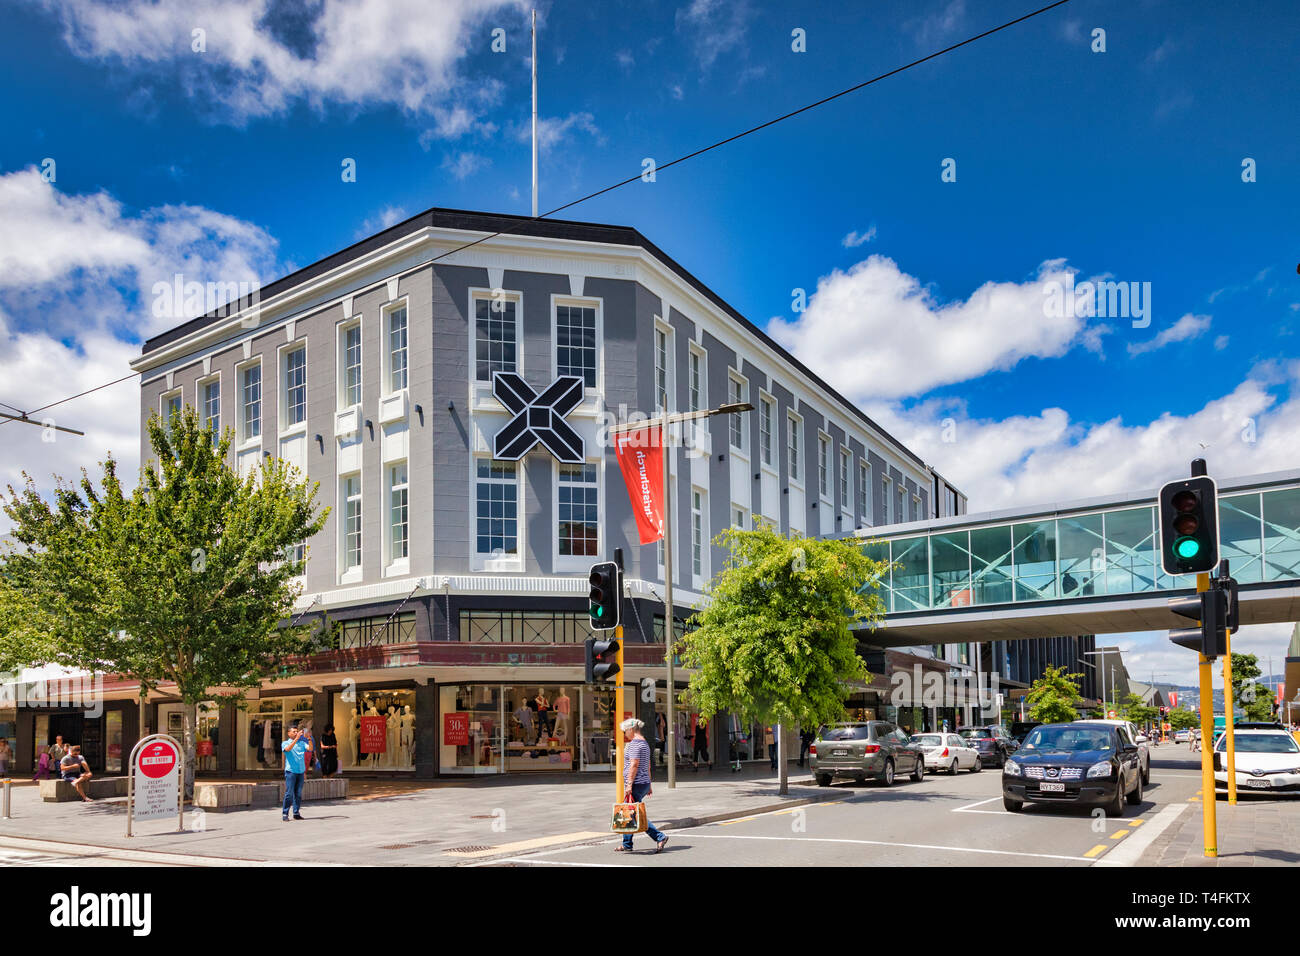 8 January 2019: Christchurch, New Zealand - The Crossing, a new shopping mall built to replace what was lost in the 2011 earthquake. Stock Photo